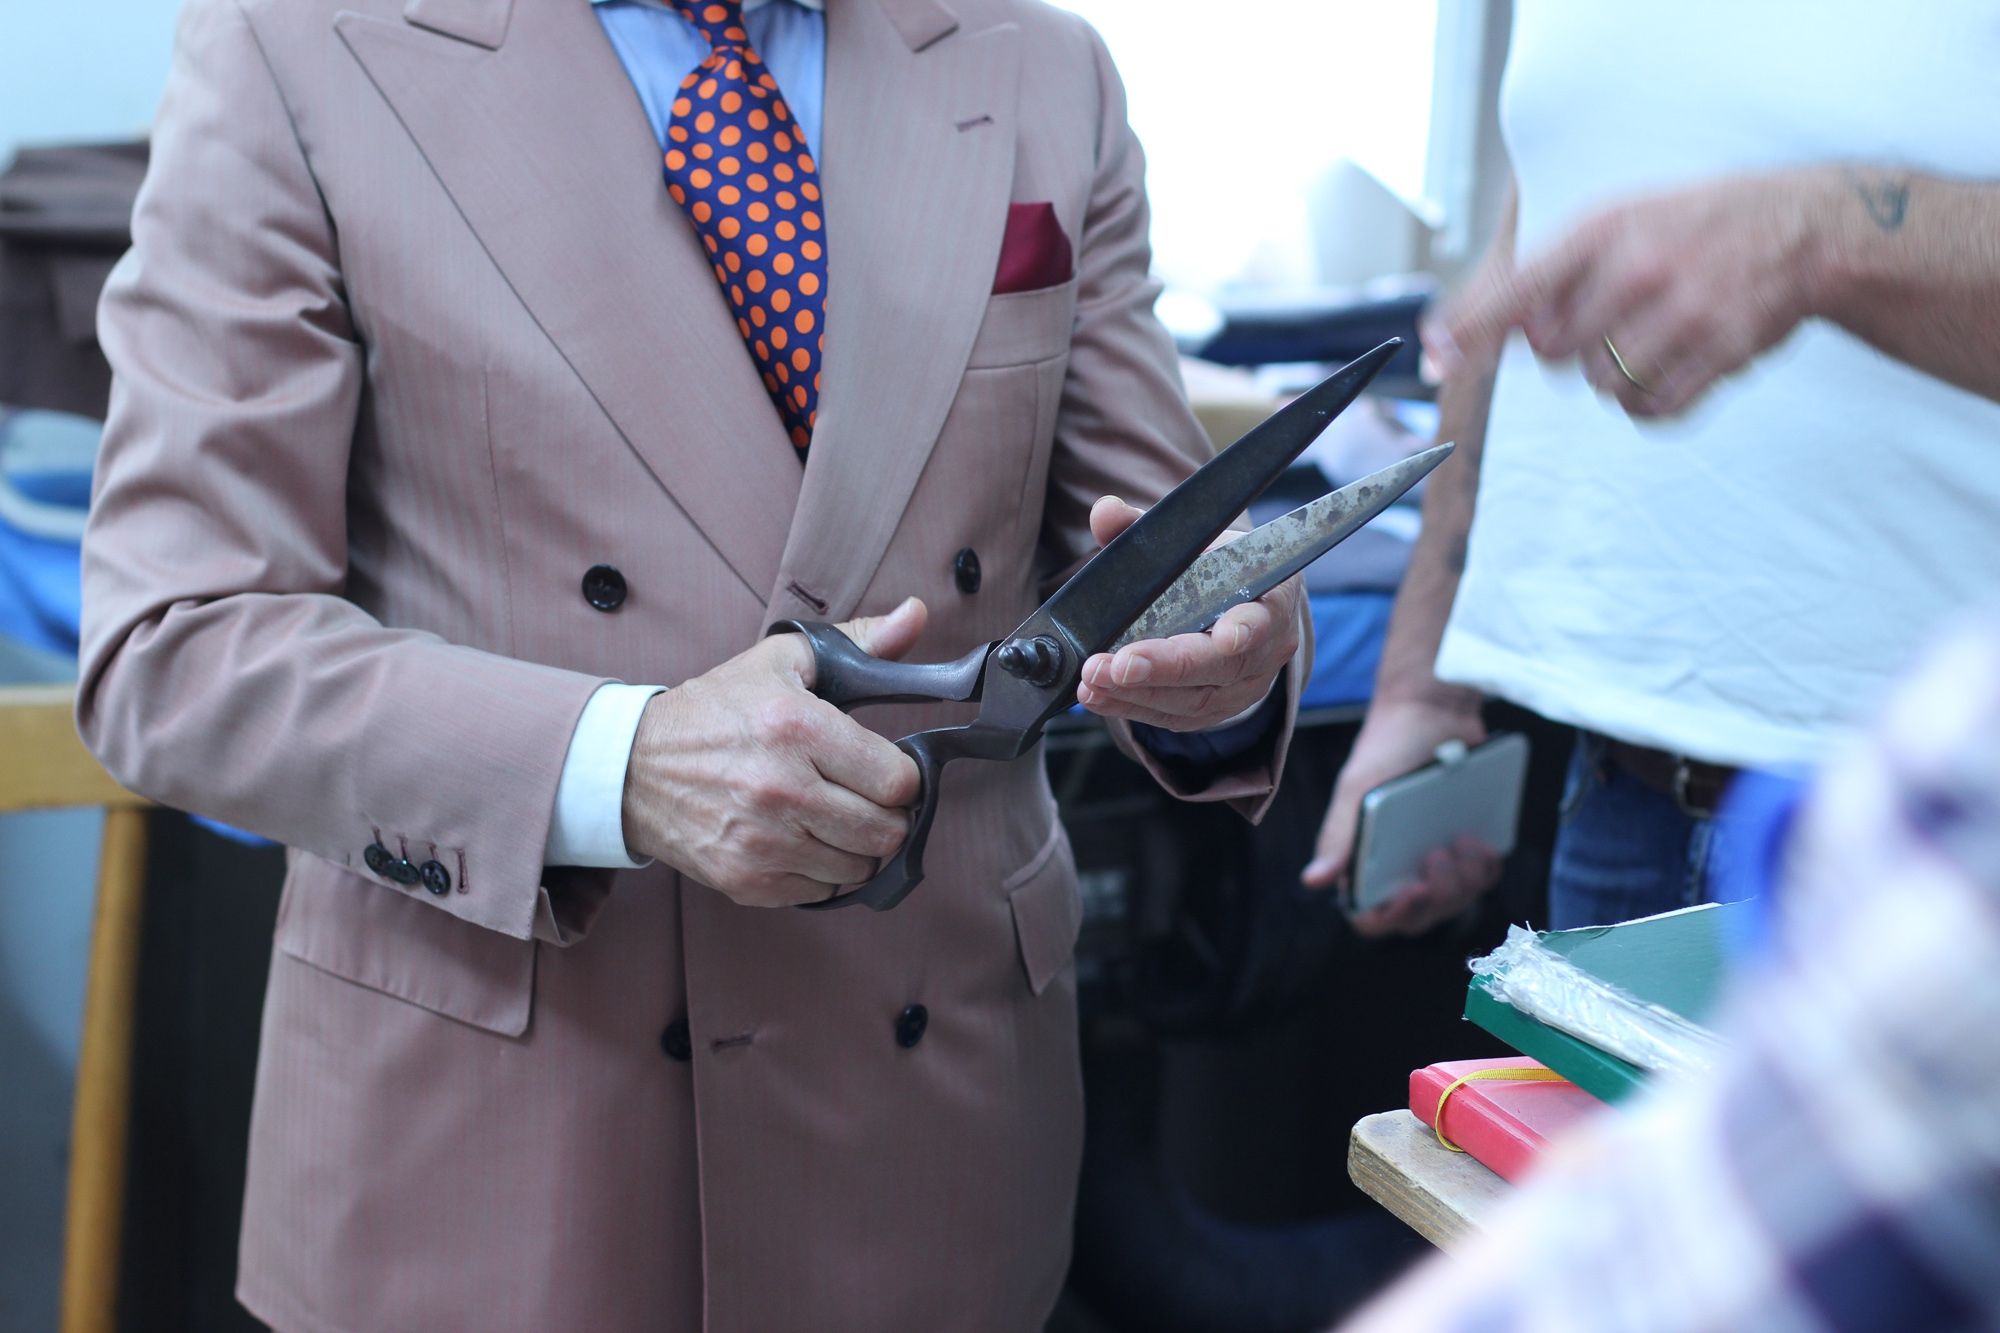 The Sicilian Chapter: Sartoria Crimi Curved dart and peculiar construction of the under-collar